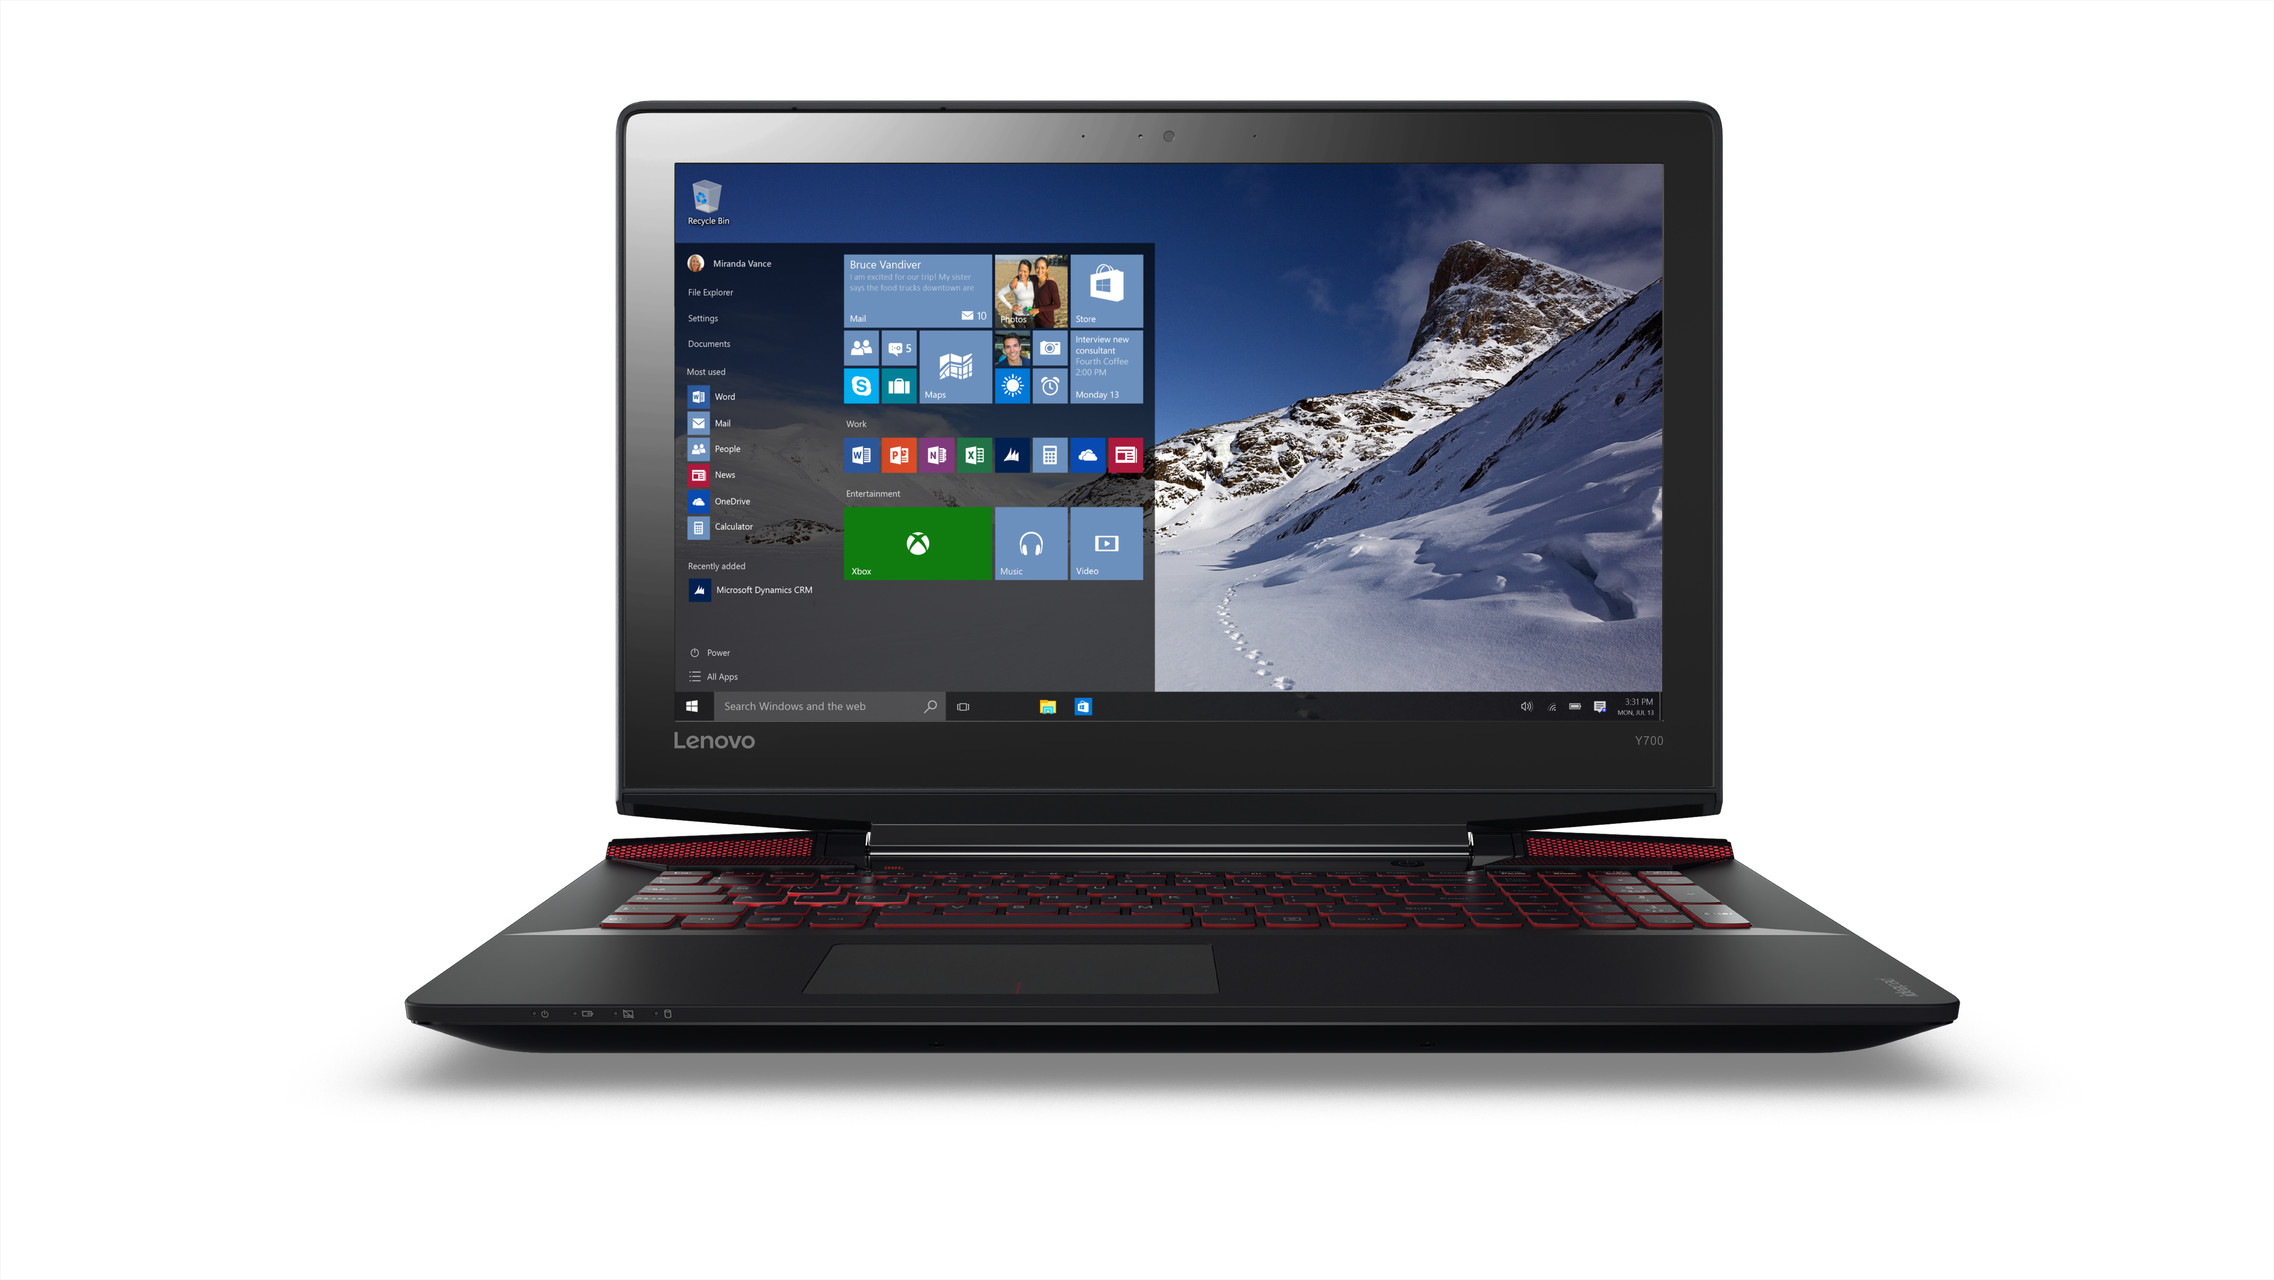 "Lenovo IdeaPad Y700 i7-6700HQ 3,50GHz/8GB/128GB SSD+1TB HDD/15,6"" FHD/IPS/AG/GeForce 4GB/3DCAM/WIN10 černá 80NV00VVCK"